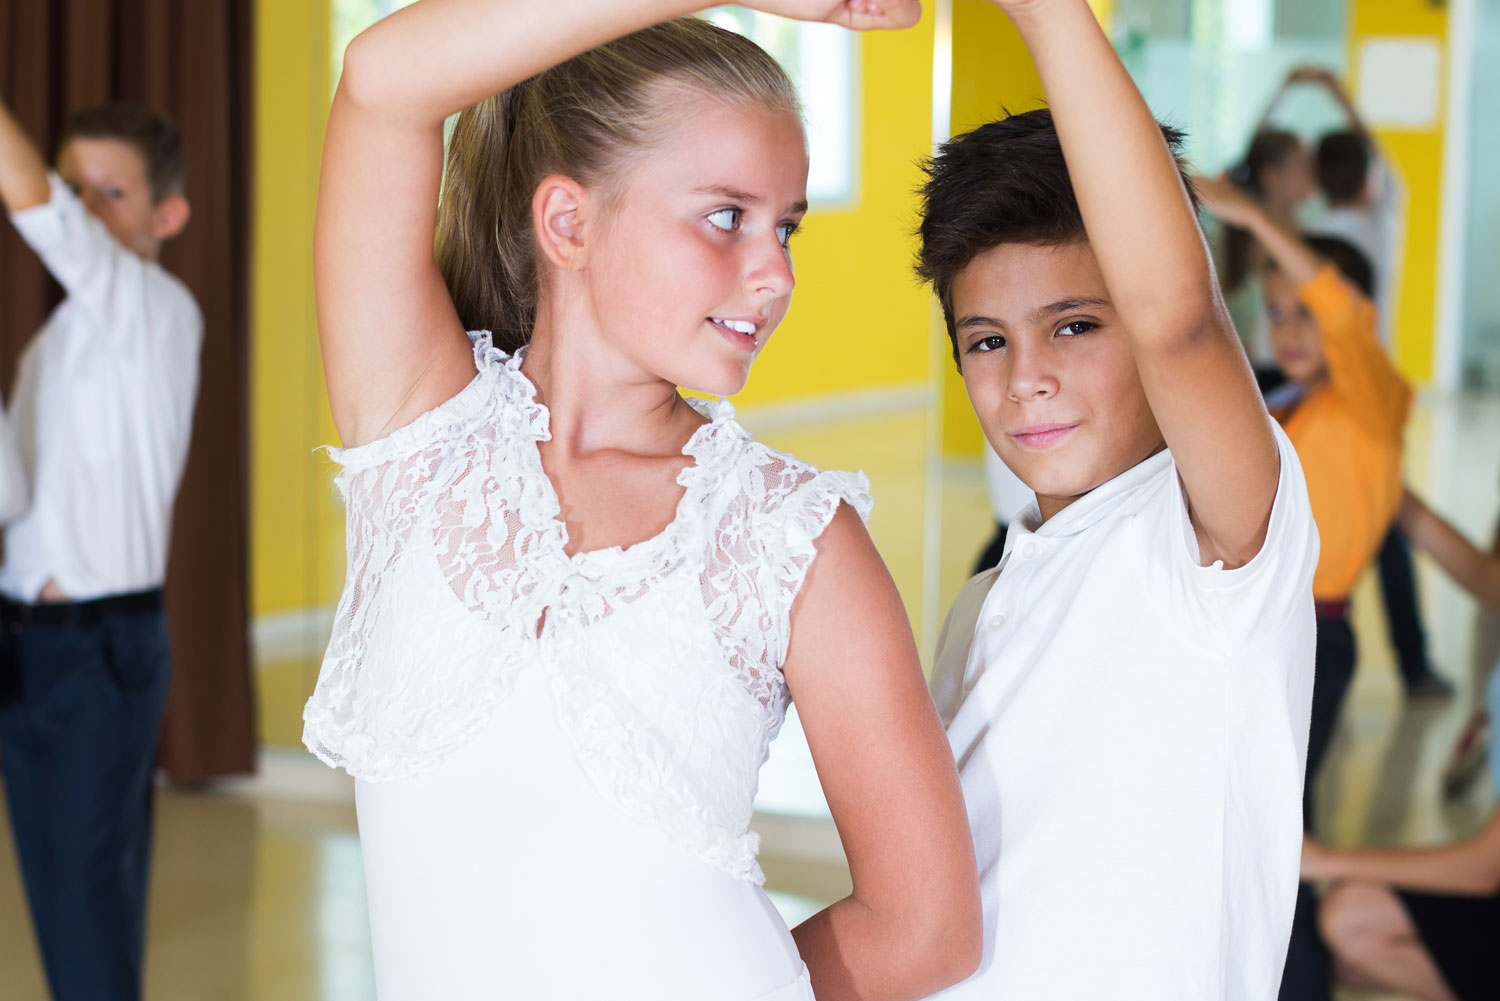 Allow your students to experience ballroom dancing with MarShere Dance Studios